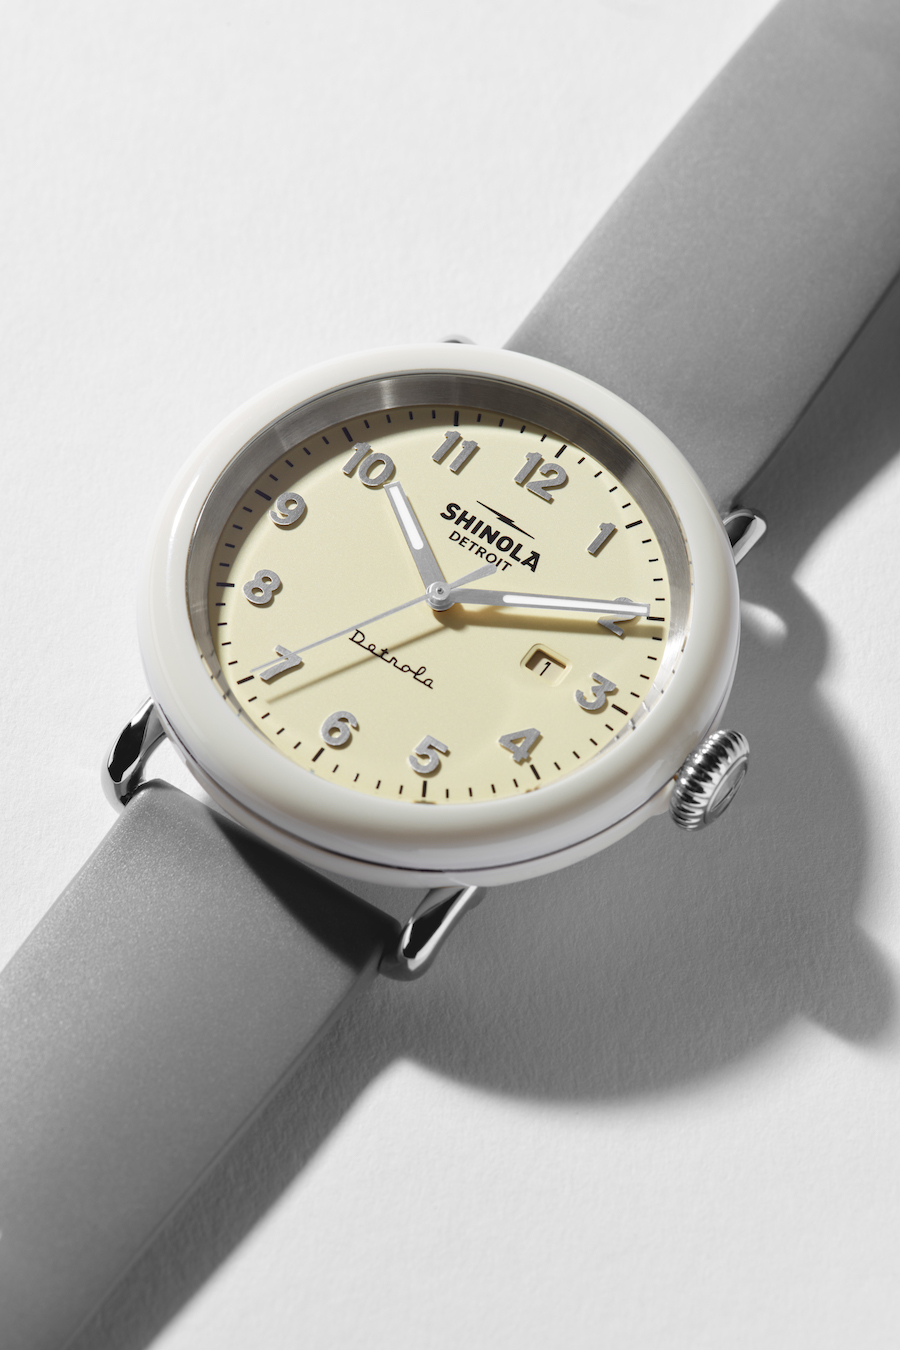 Detrola, Shinola